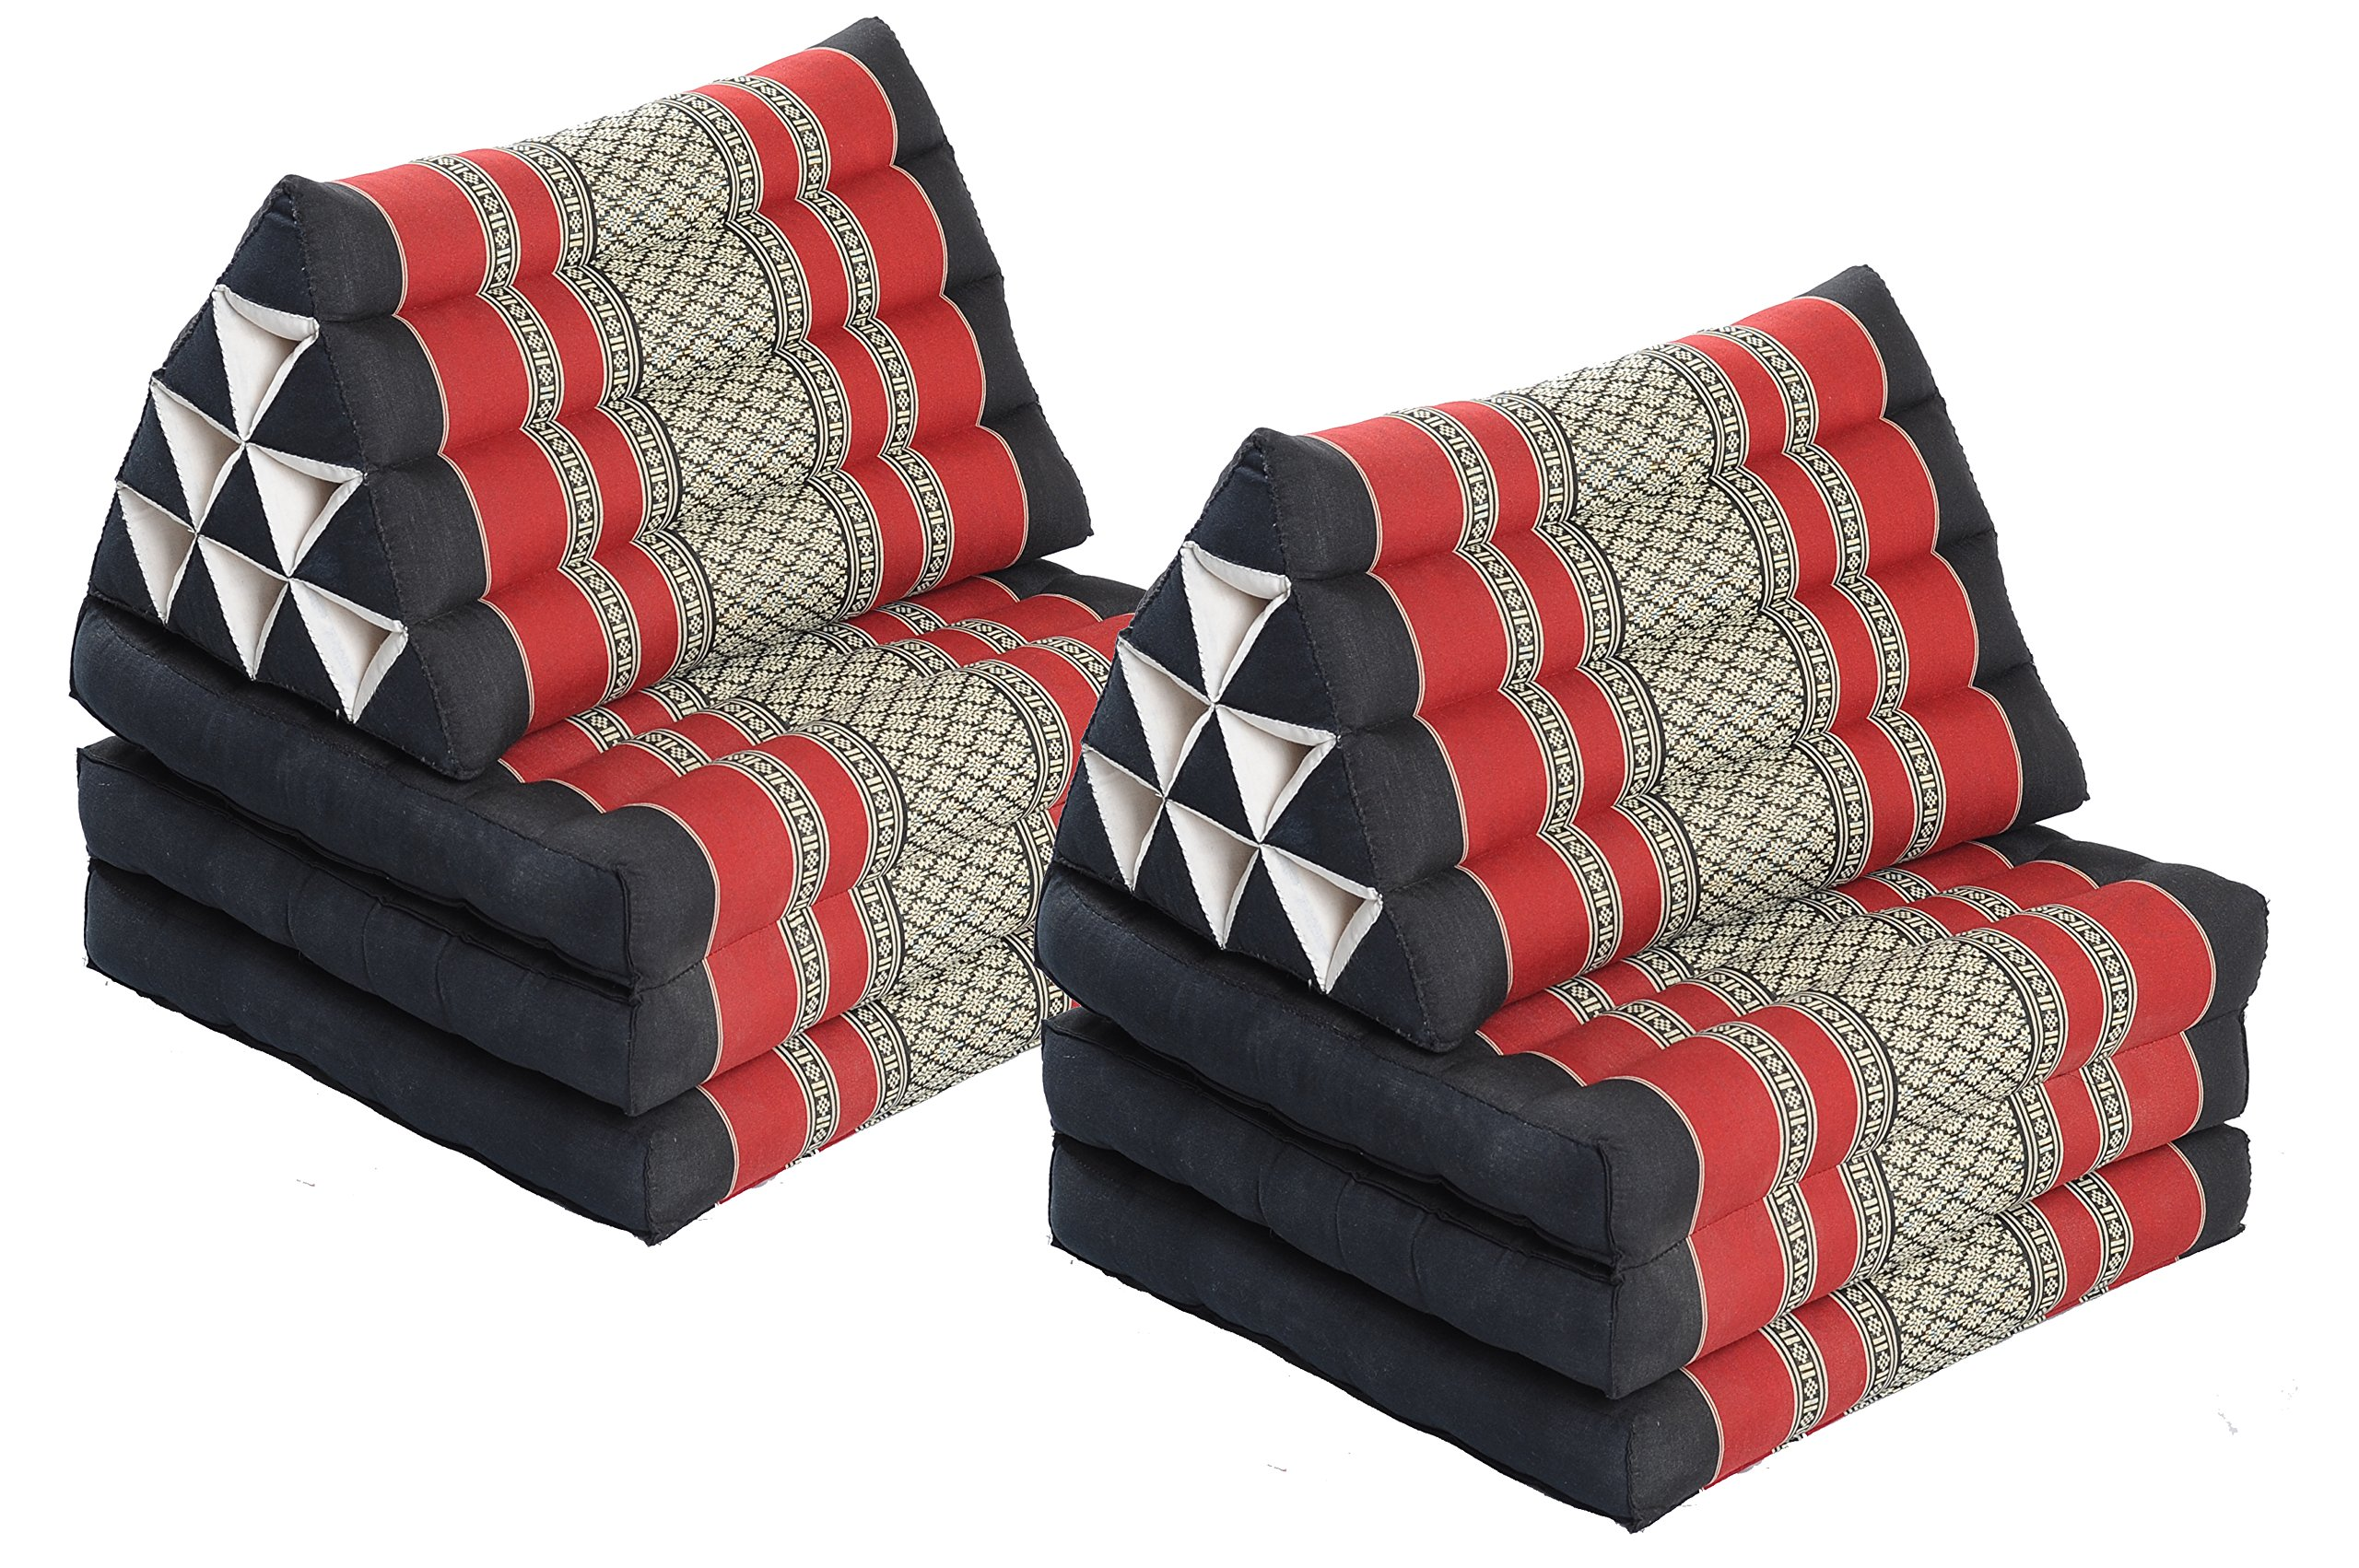 Double Lounge Pack: 2x Triangle 3-Fold Mat (67x20) Thai Triangular Pillow Set 100% Kapok Filling Cushion Black & Red Floorcushion by Handelsturm